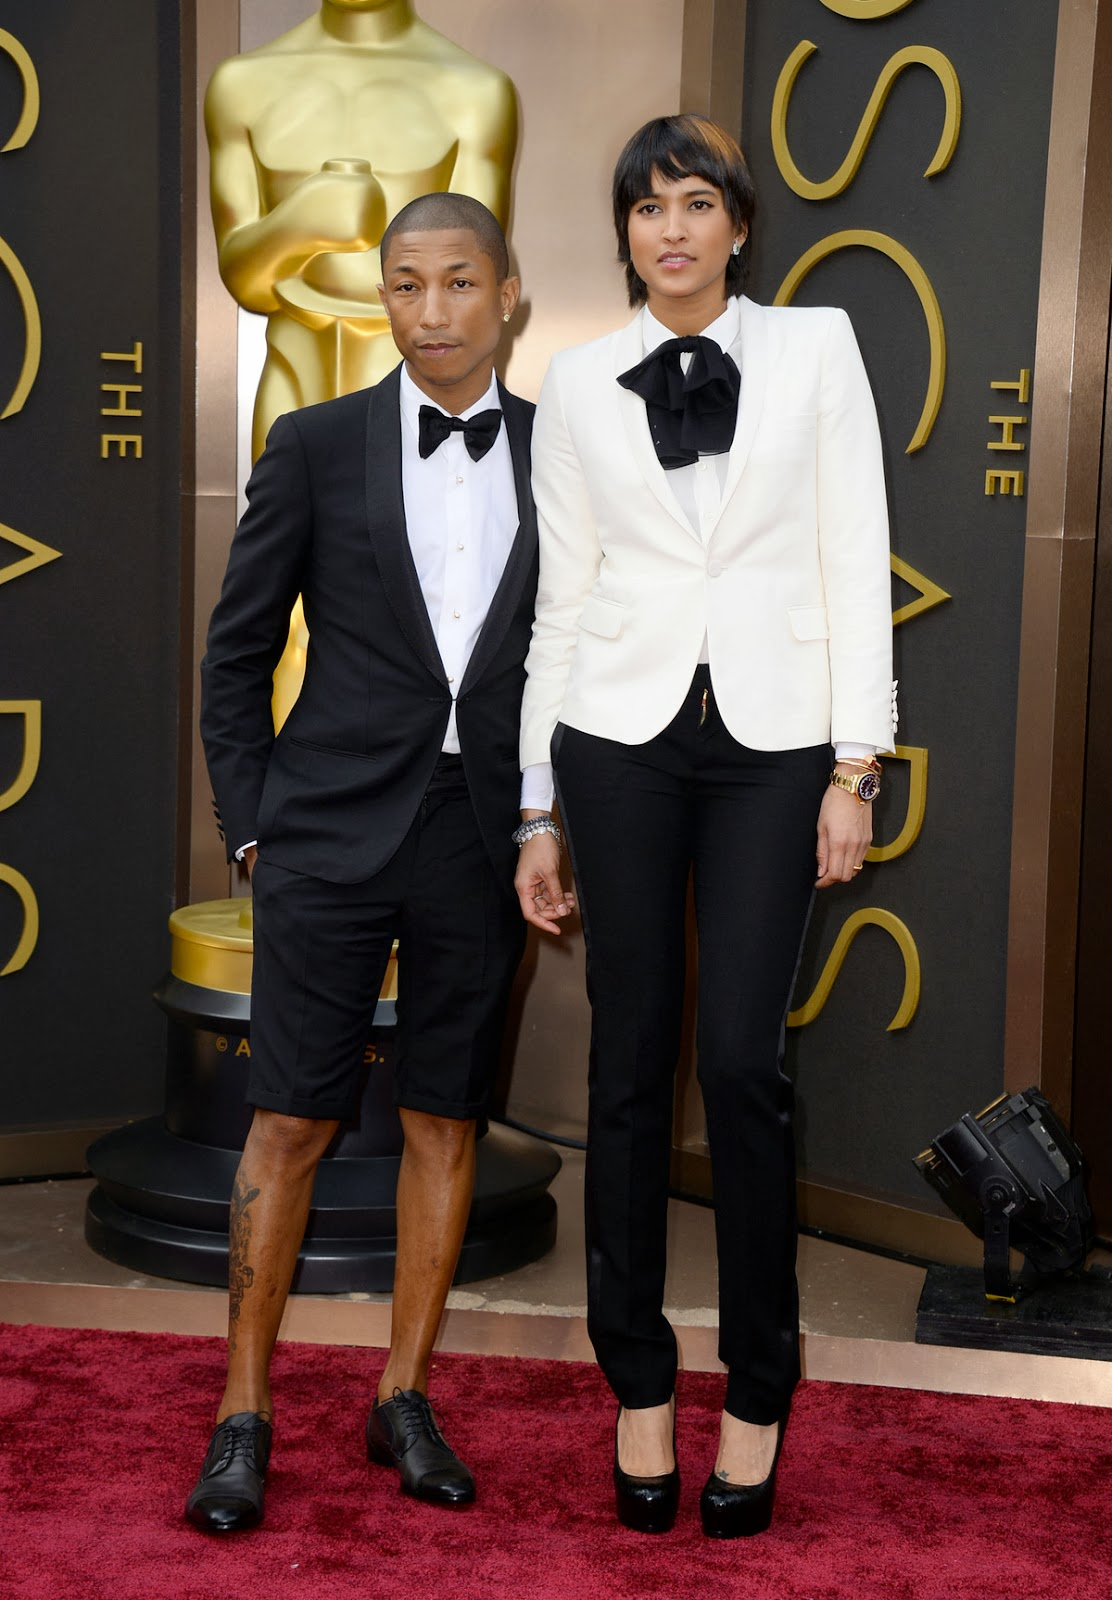 Pharrell Williams at the Oscars Red Carpet in Lanvin